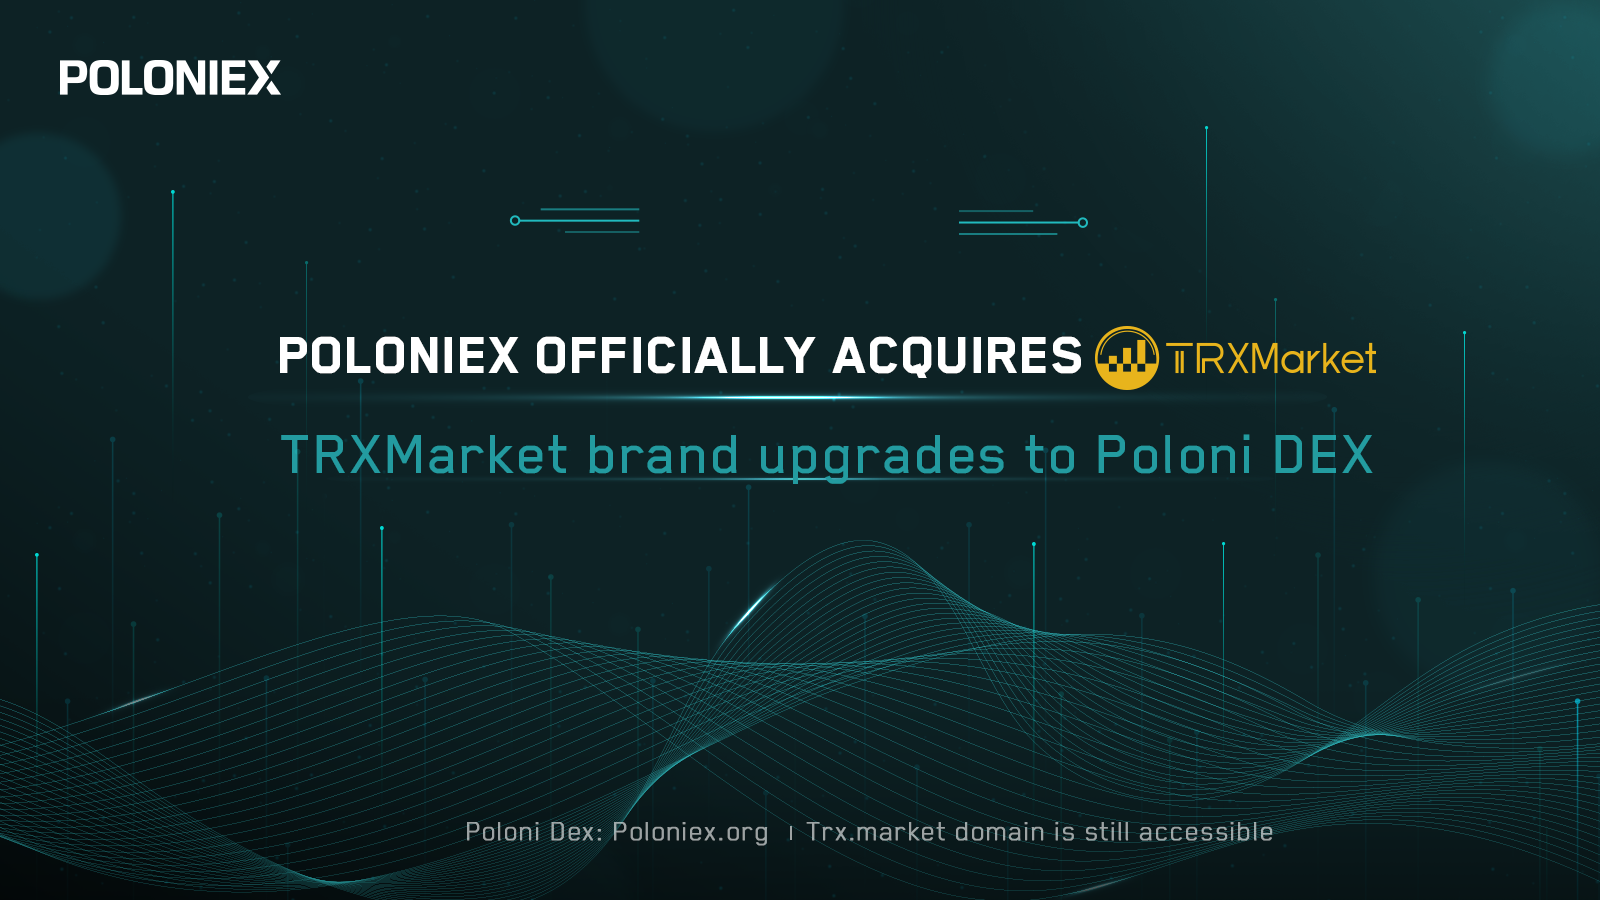 Poloniex Acquires Justin Sun's Decentralized Exchange, TrxMarket DEX